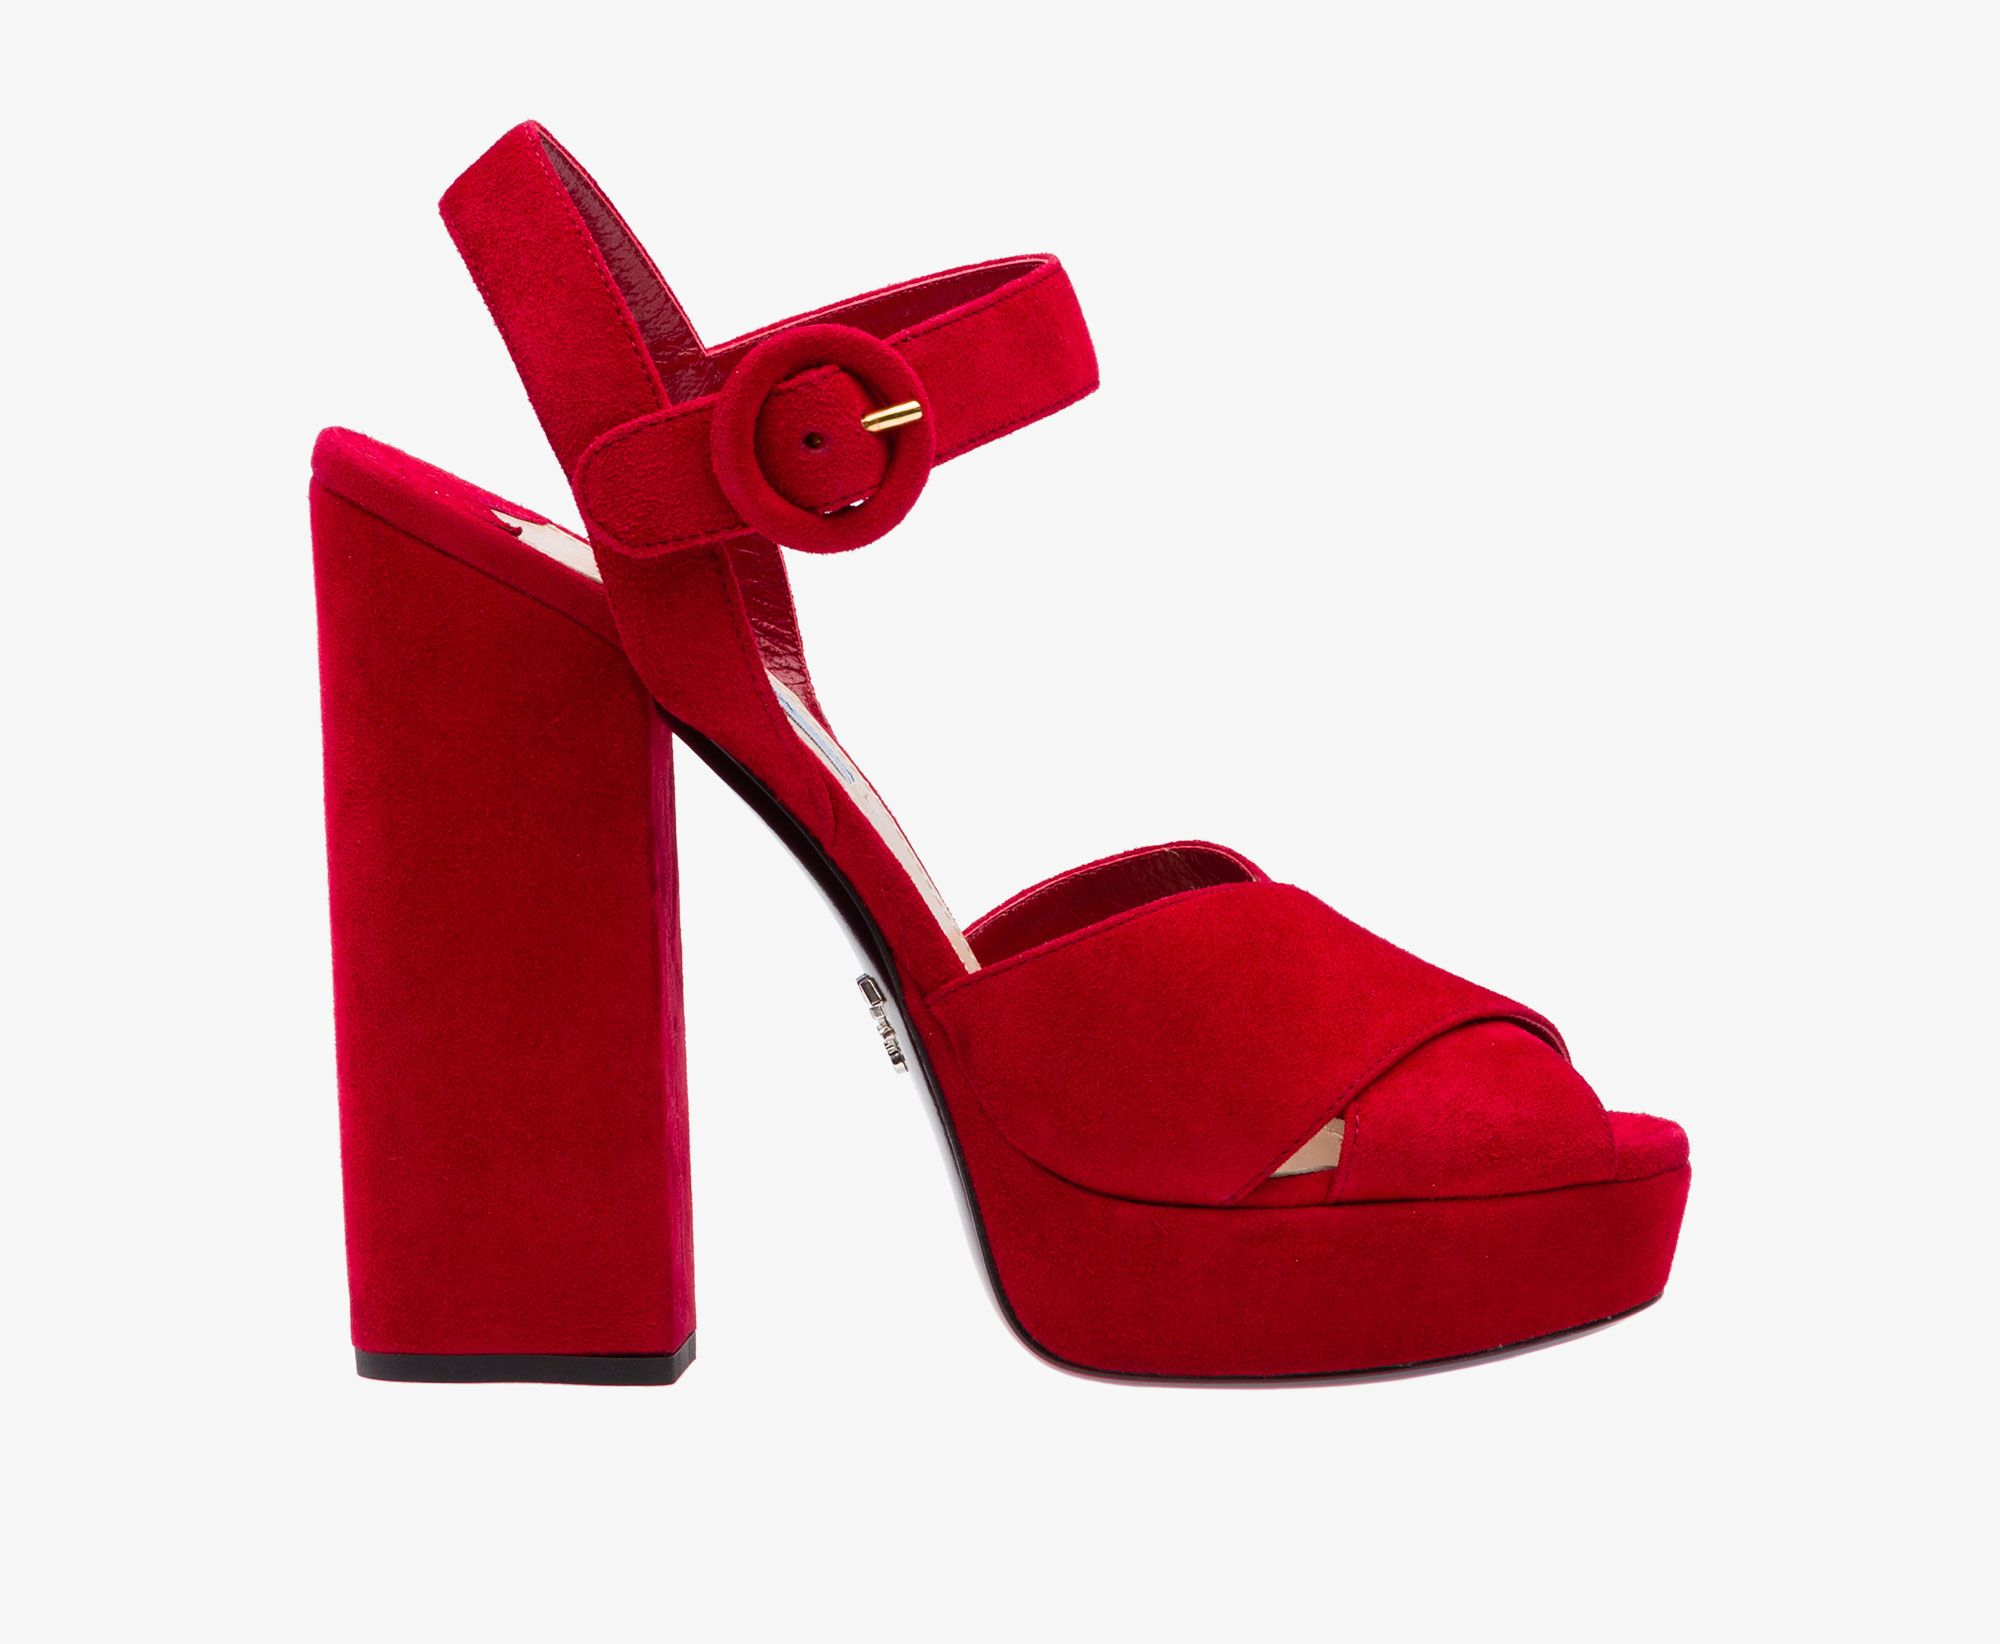 4784f335118 Suede platform sandal Crisscross bands Strap with covered buckle 130mm  column heel Leather sole with nonslip injected rubber insert